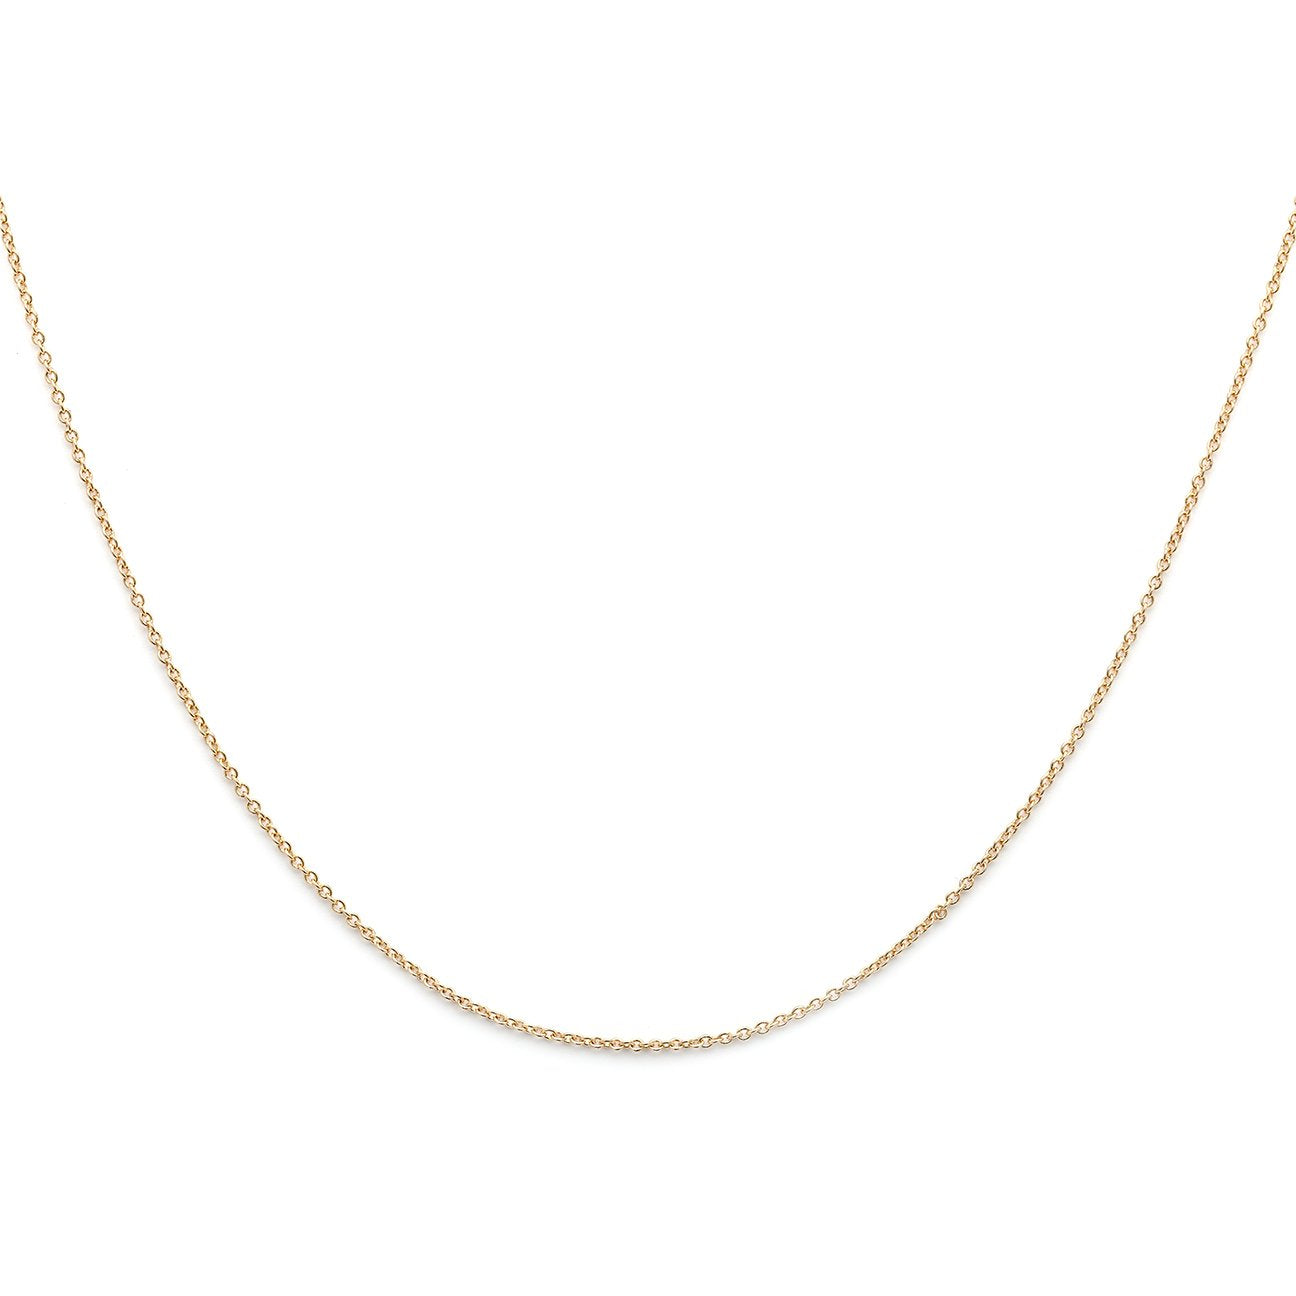 Cable Chain - Gold Vermeil